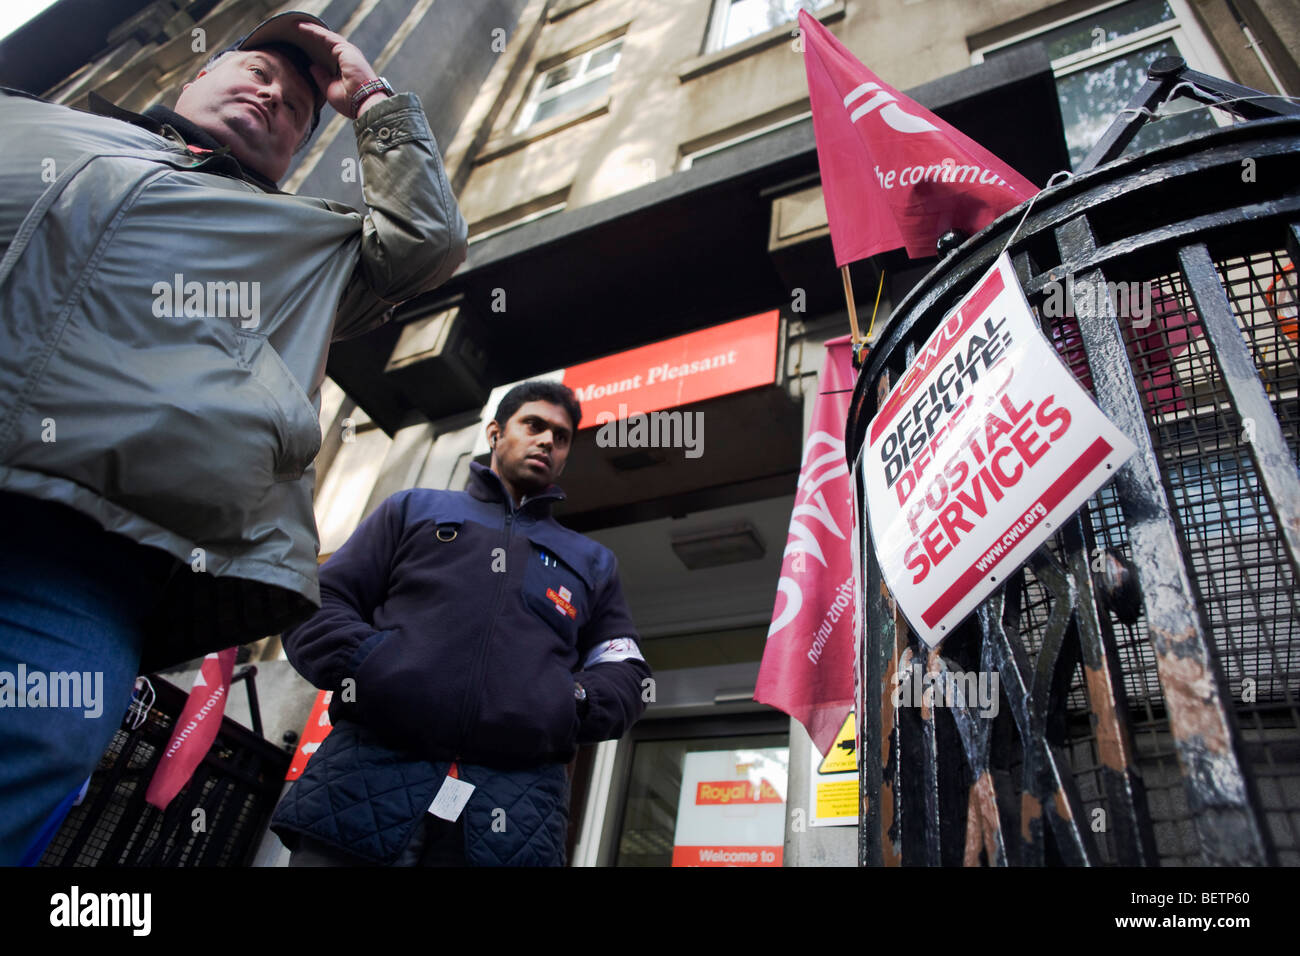 Official Royal Mail Communication Workers Union (CWU) picket outside their Mount Pleasant sorting office in central - Stock Image